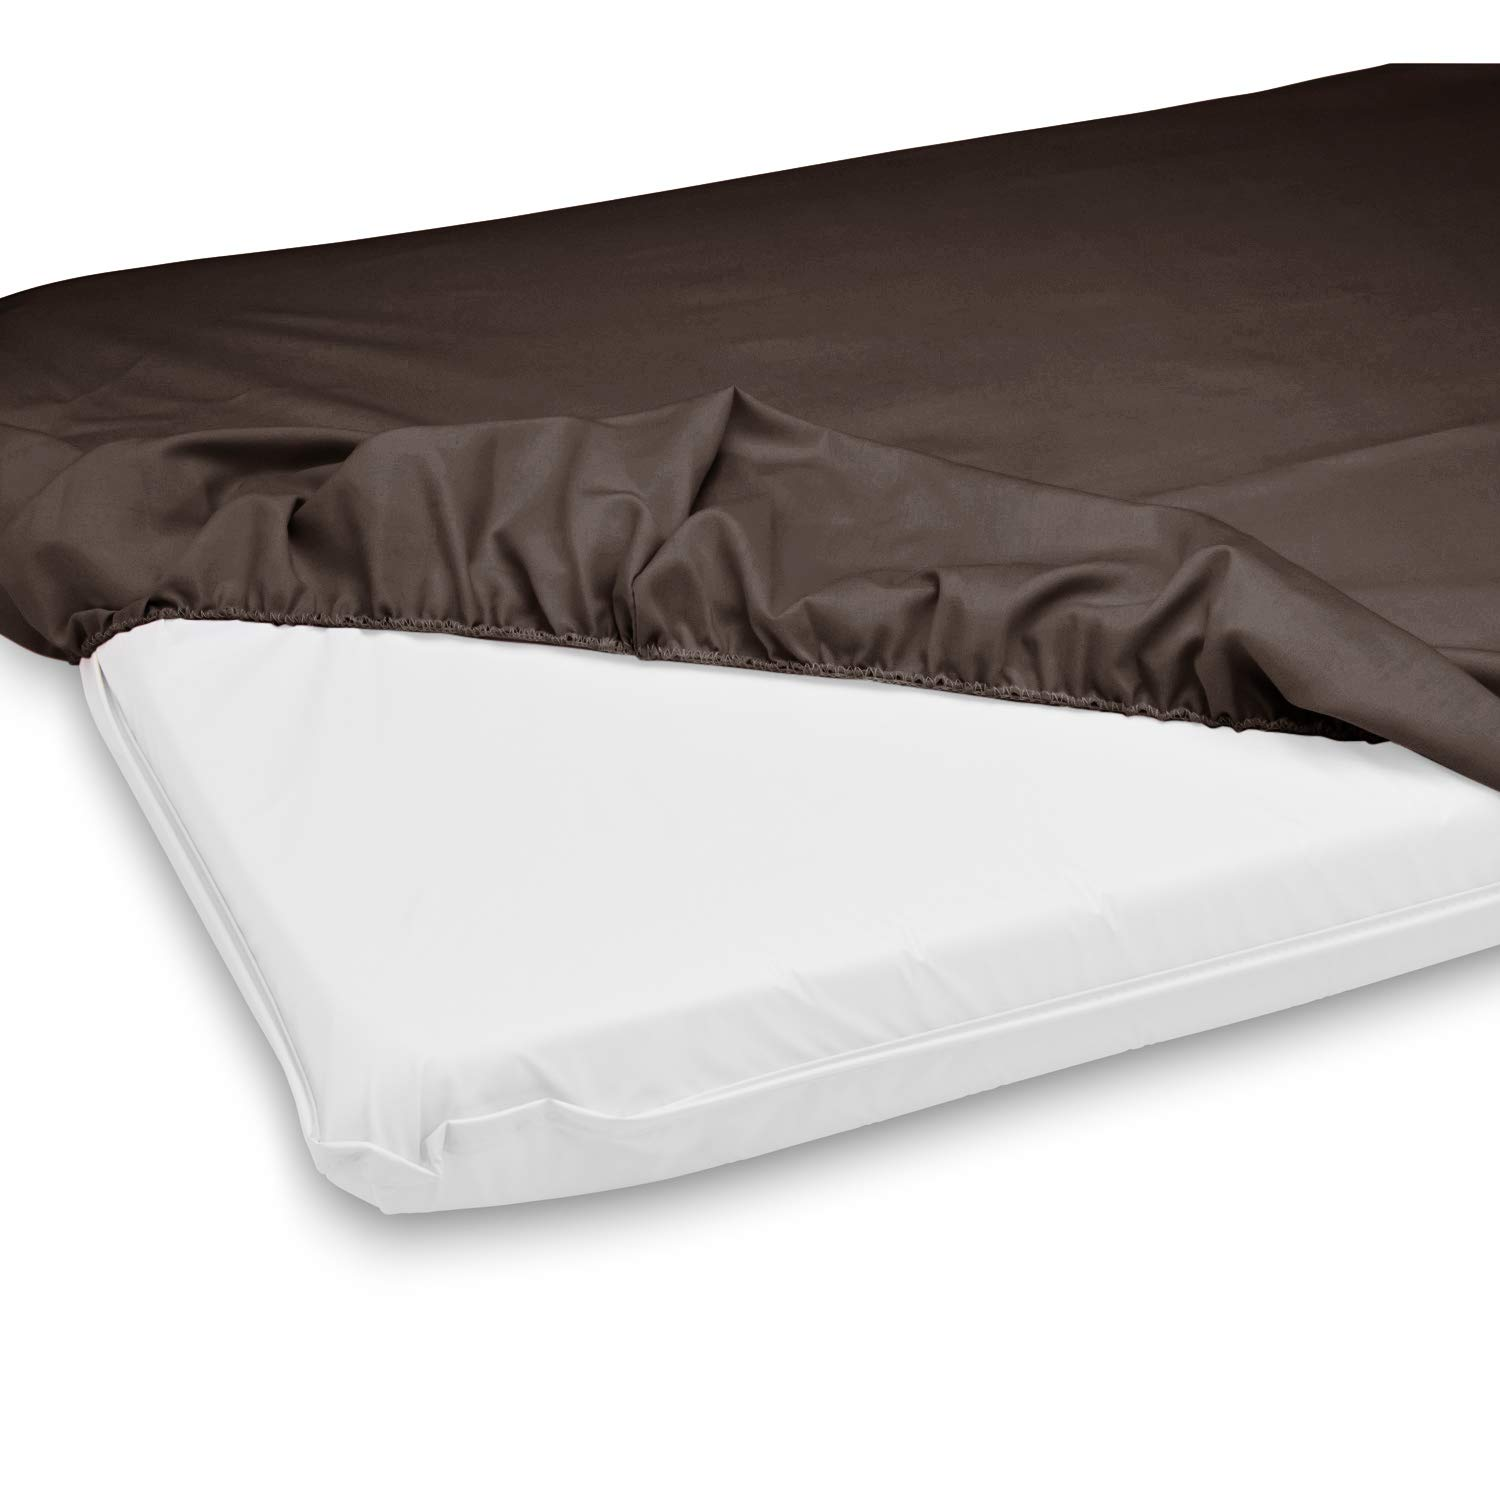 Size Color Cradle Mattress and Sheet Combo Black 15x33